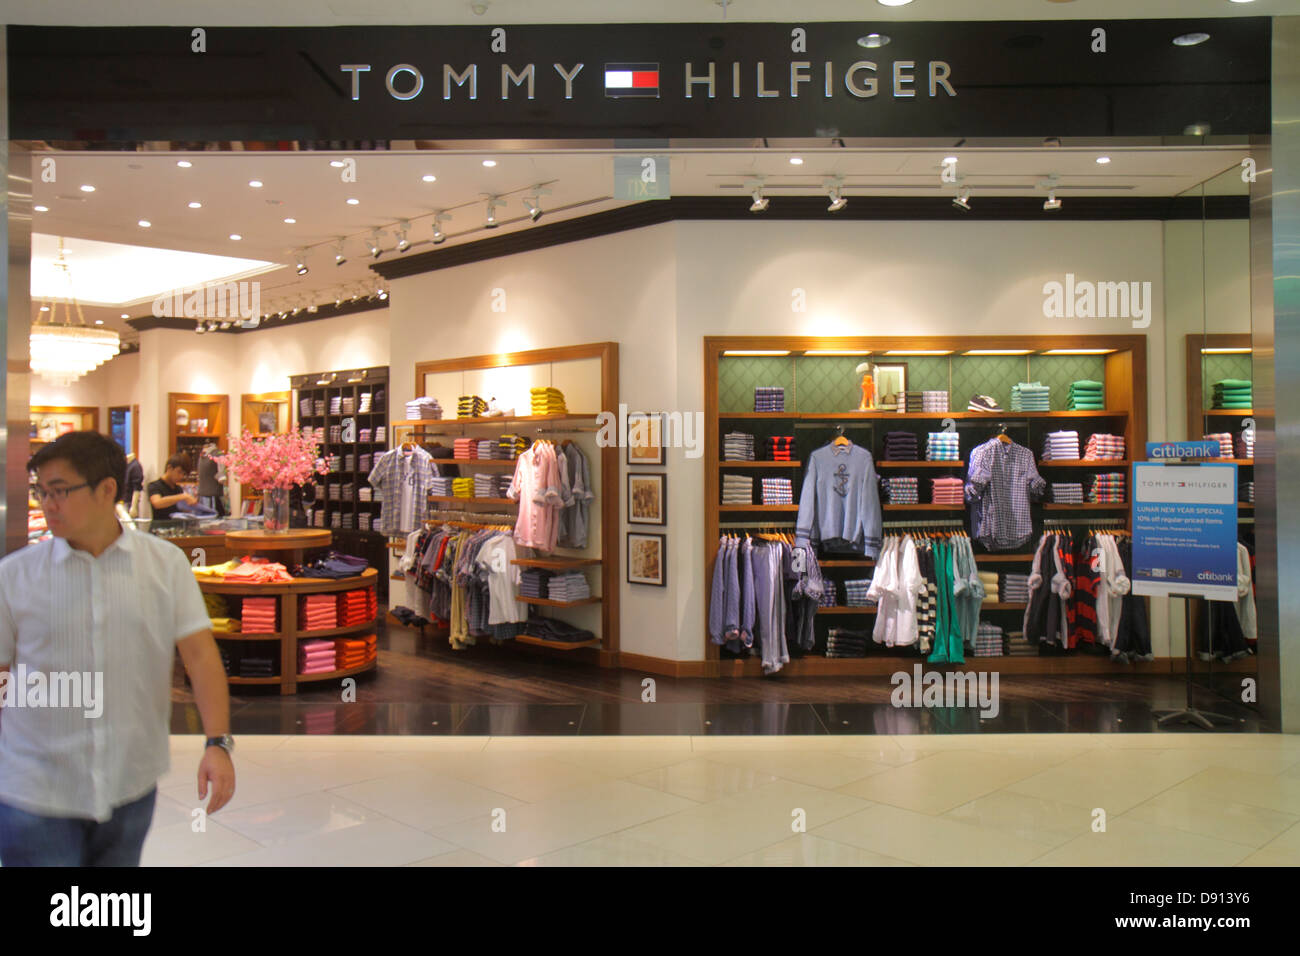 f2432f279 Singapore Raffles City Shopping Centre center shopping front entrance  retail display for sale Tommy Hilfiger clothing